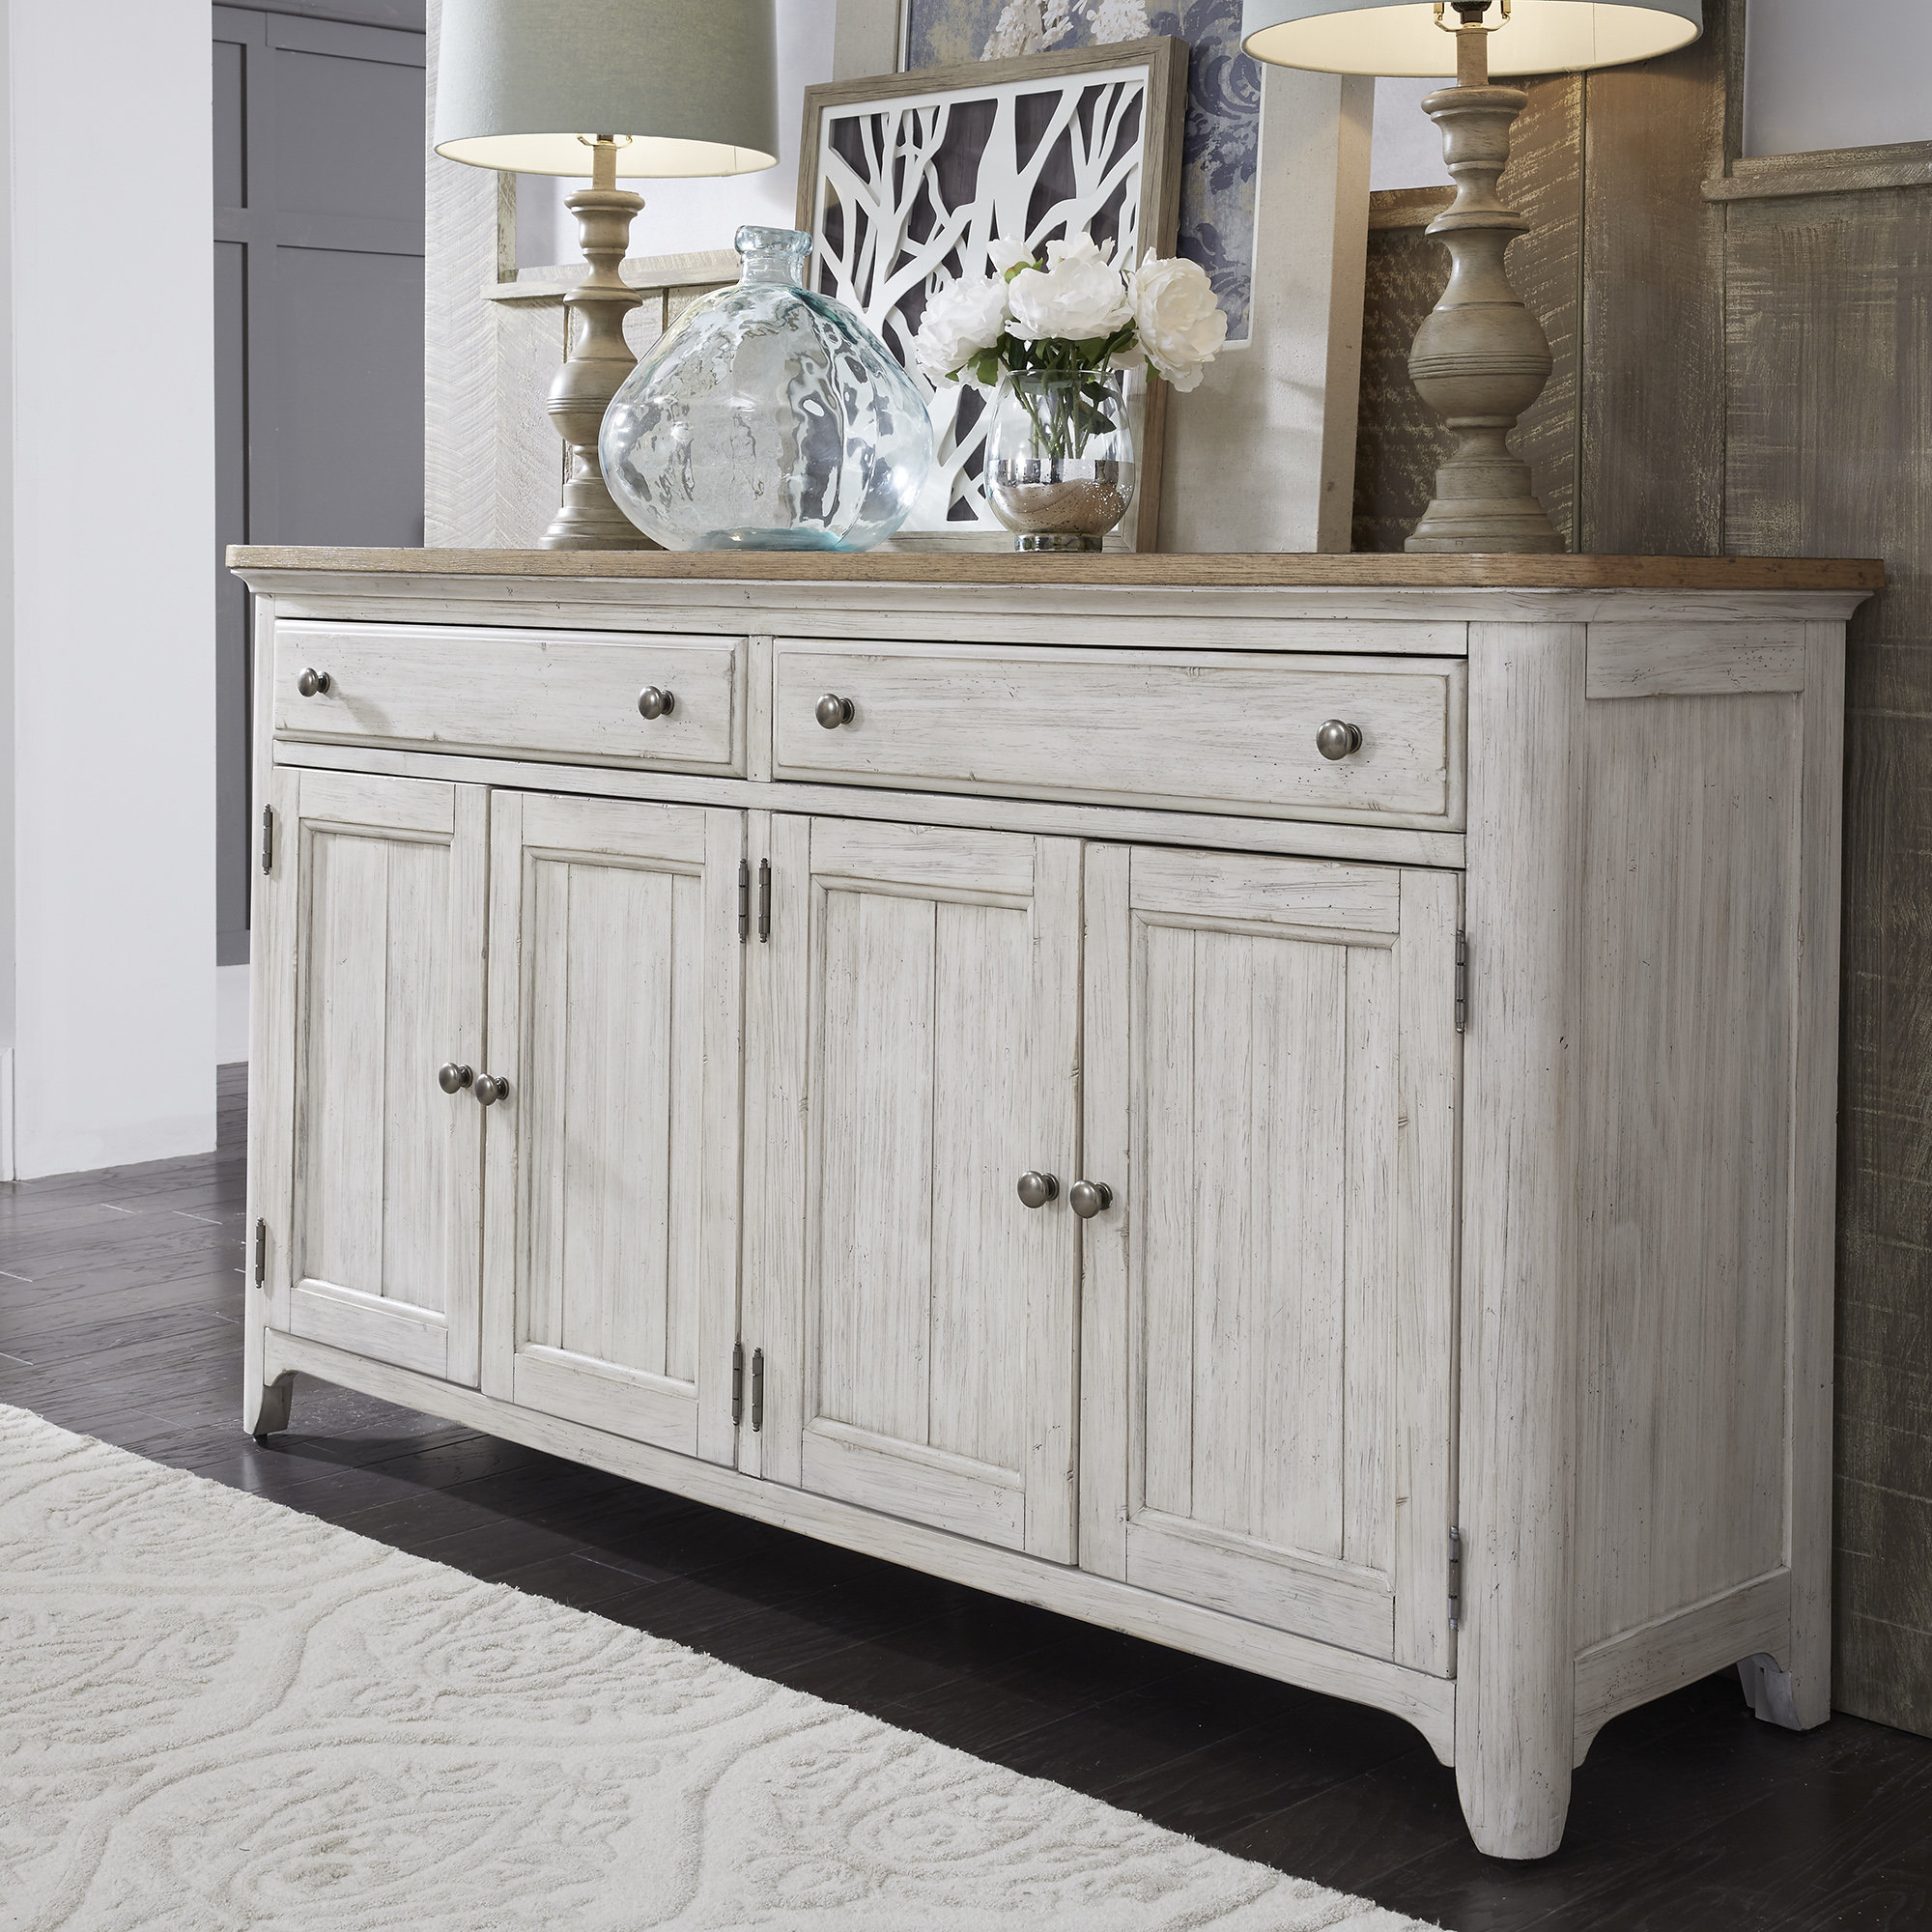 Popular Payton Serving Sideboards Inside Farmhouse & Rustic Silverware Storage Equipped Sideboards (View 15 of 20)